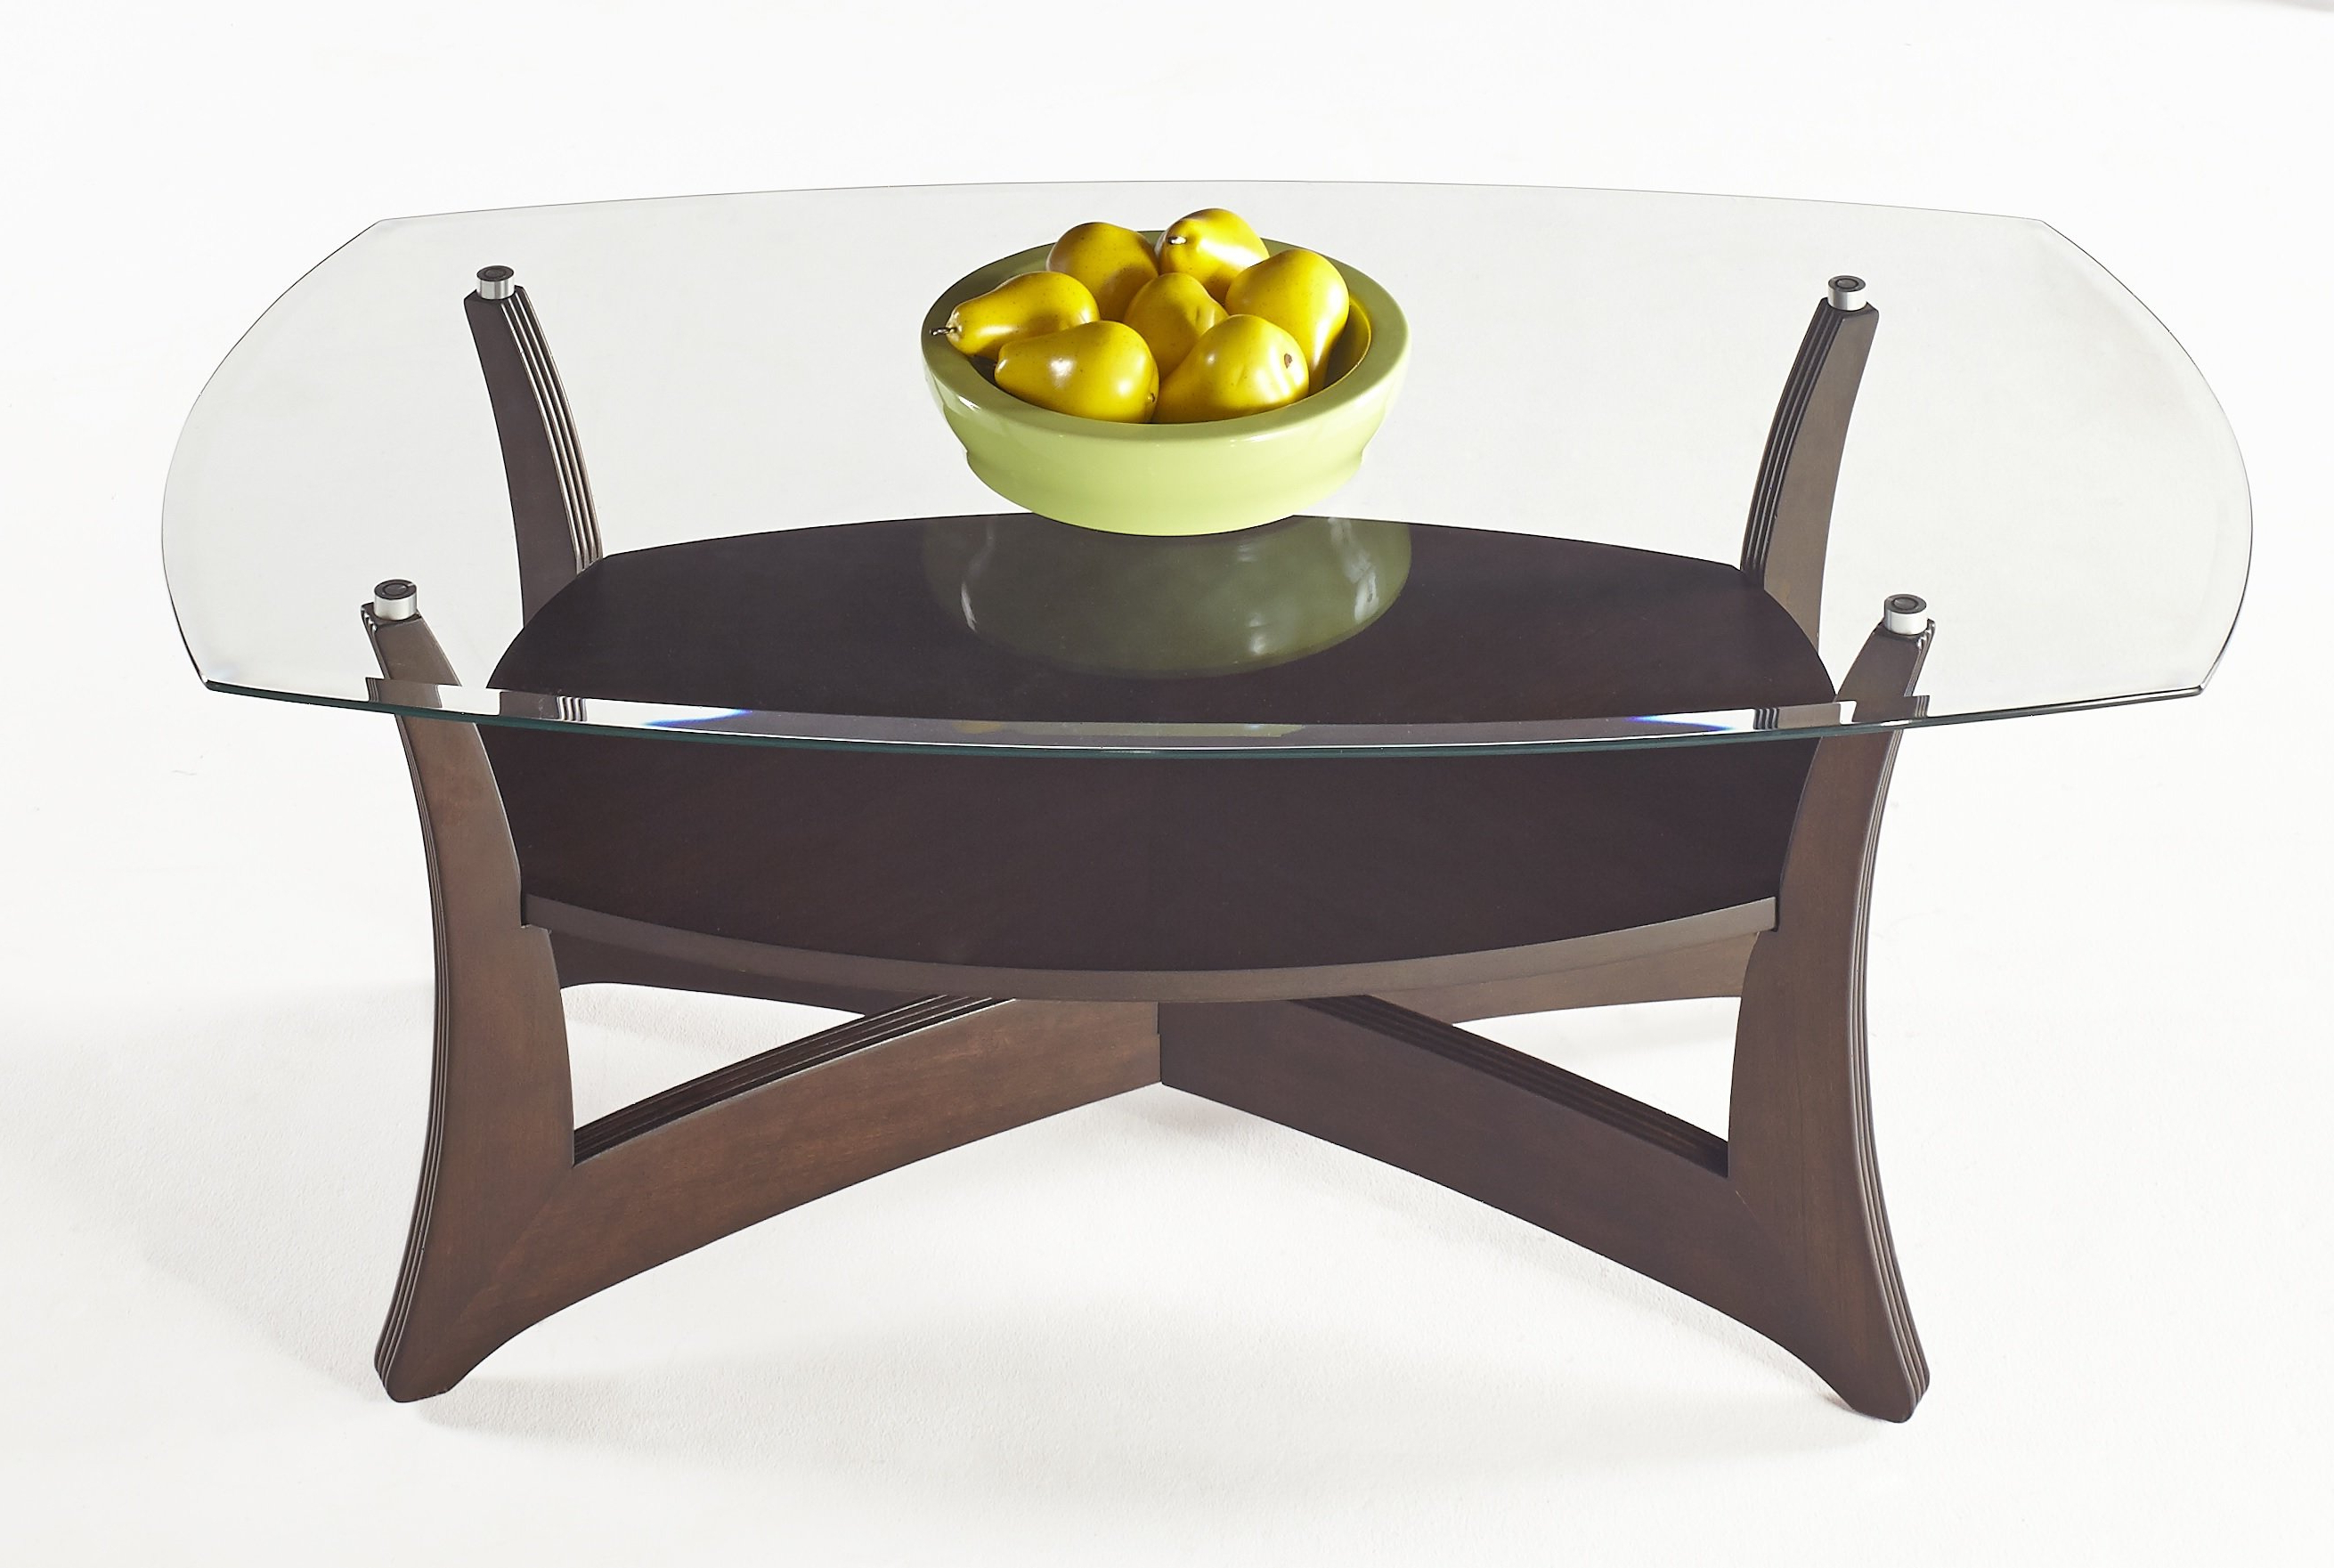 Wayfair With Regard To Contemporary Curves Coffee Tables (Gallery 13 of 20)